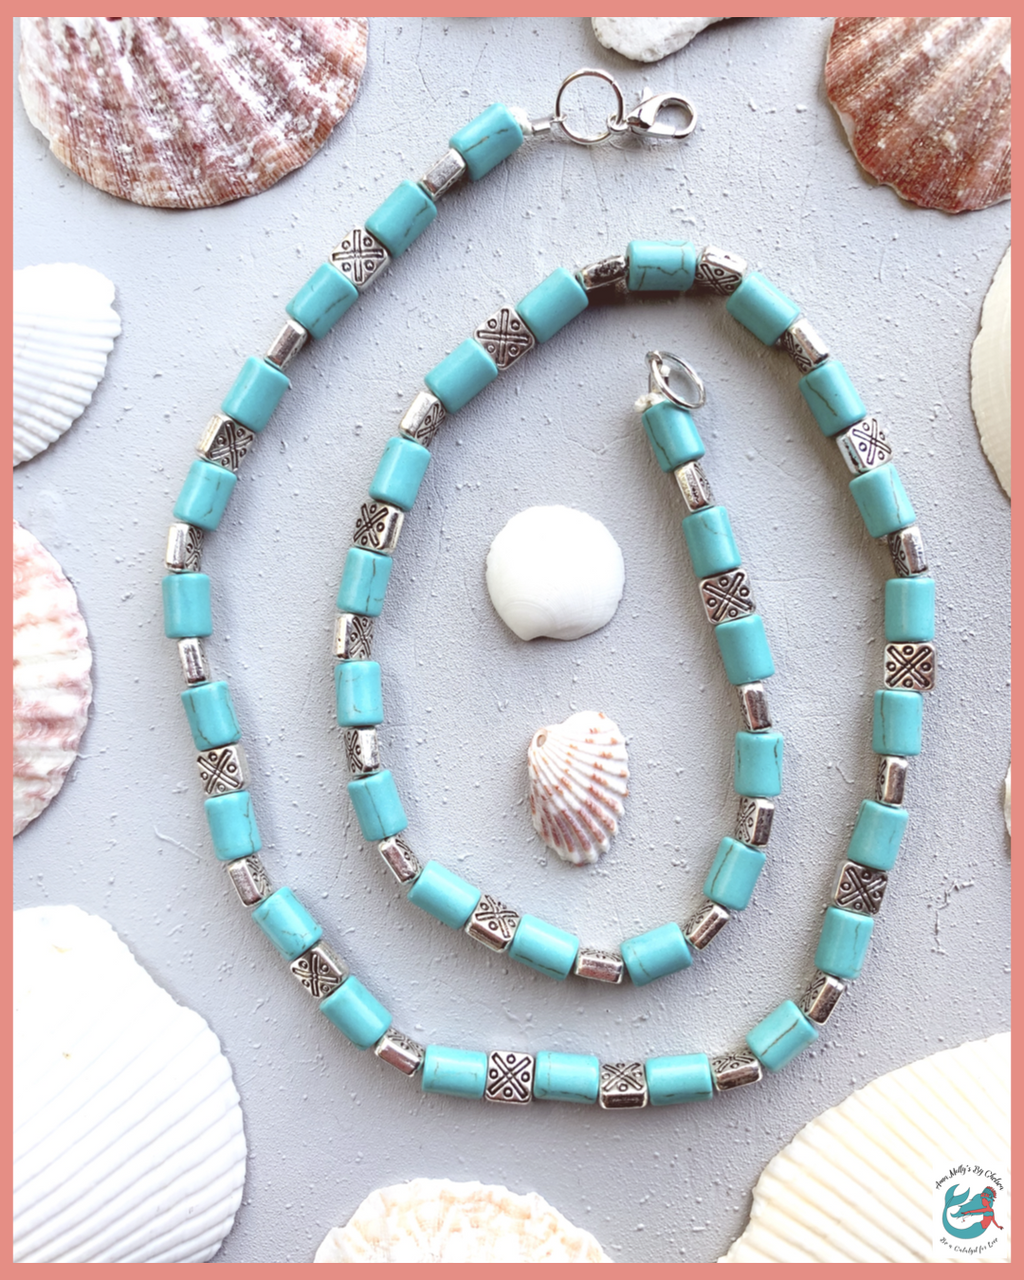 Image shows a turquoise and silver beaded necklace on a grey desk with seashells. This boho western style necklace is handmade using upcycled materials. More slow fashion ethical jewelry available to shop at www.annamollysbychelsea.com